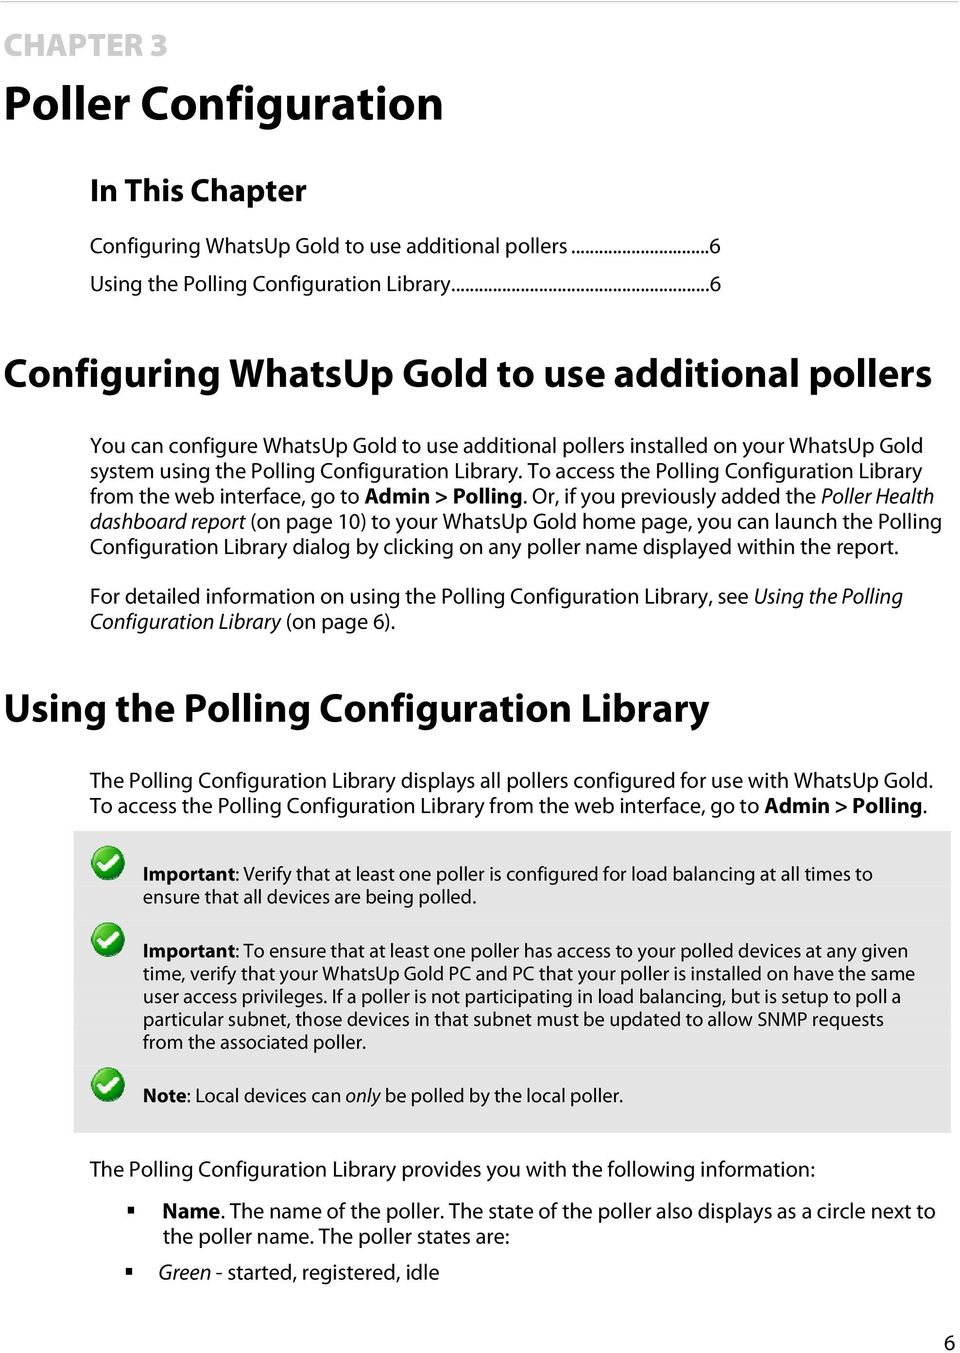 To access the Polling Configuration Library from the web interface, go to Admin > Polling.